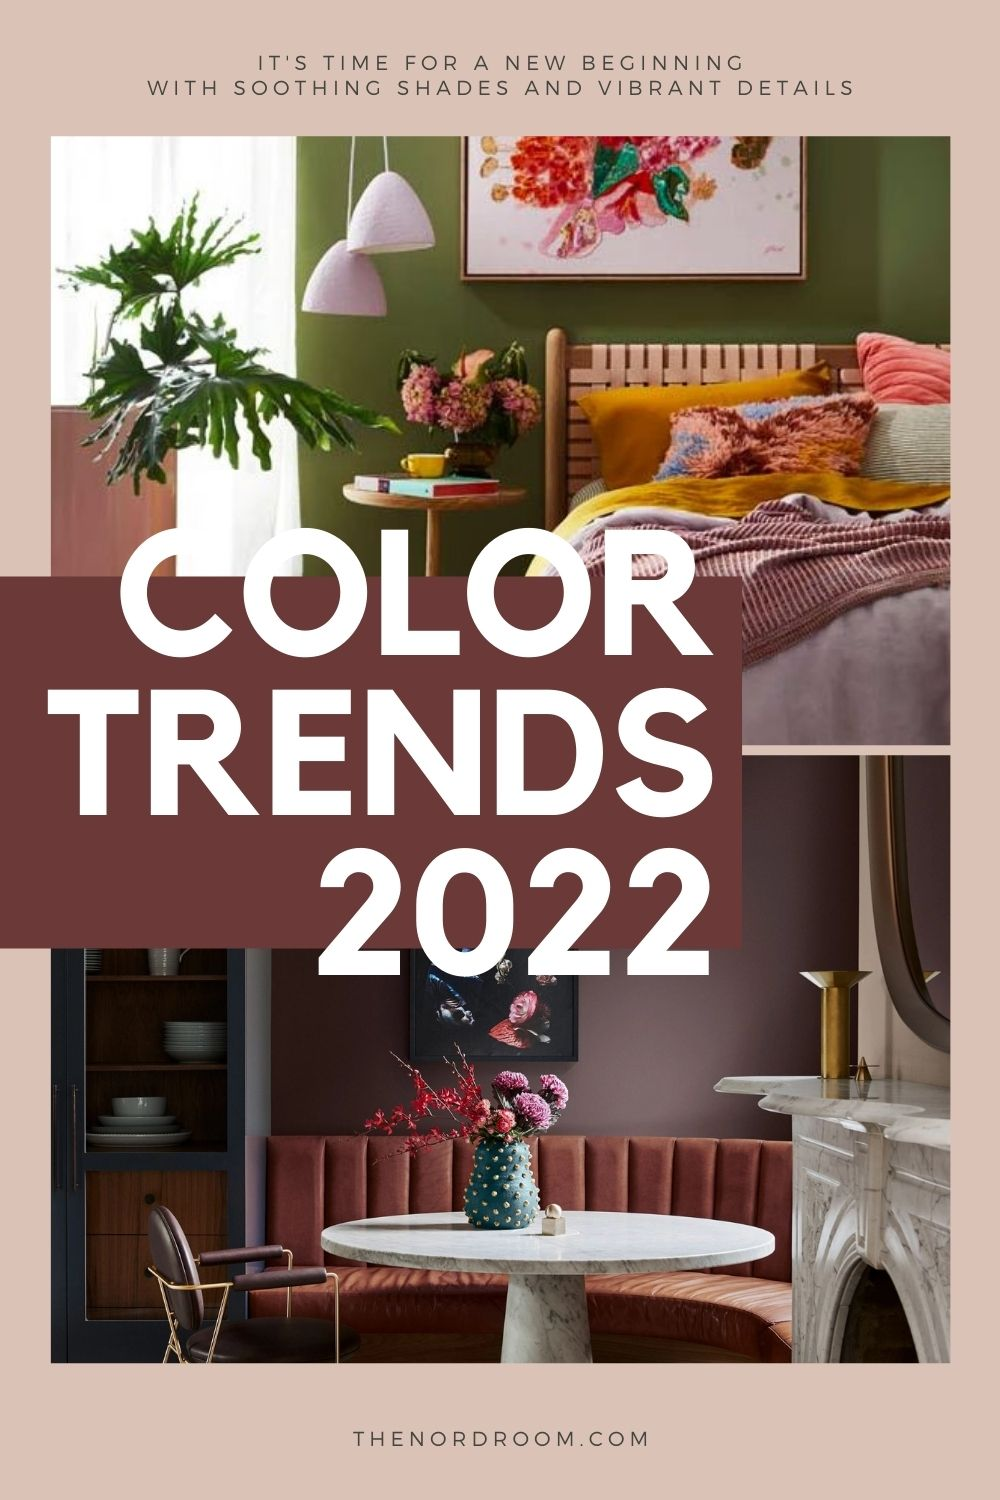 The Color Trends 2022: A New Beginning